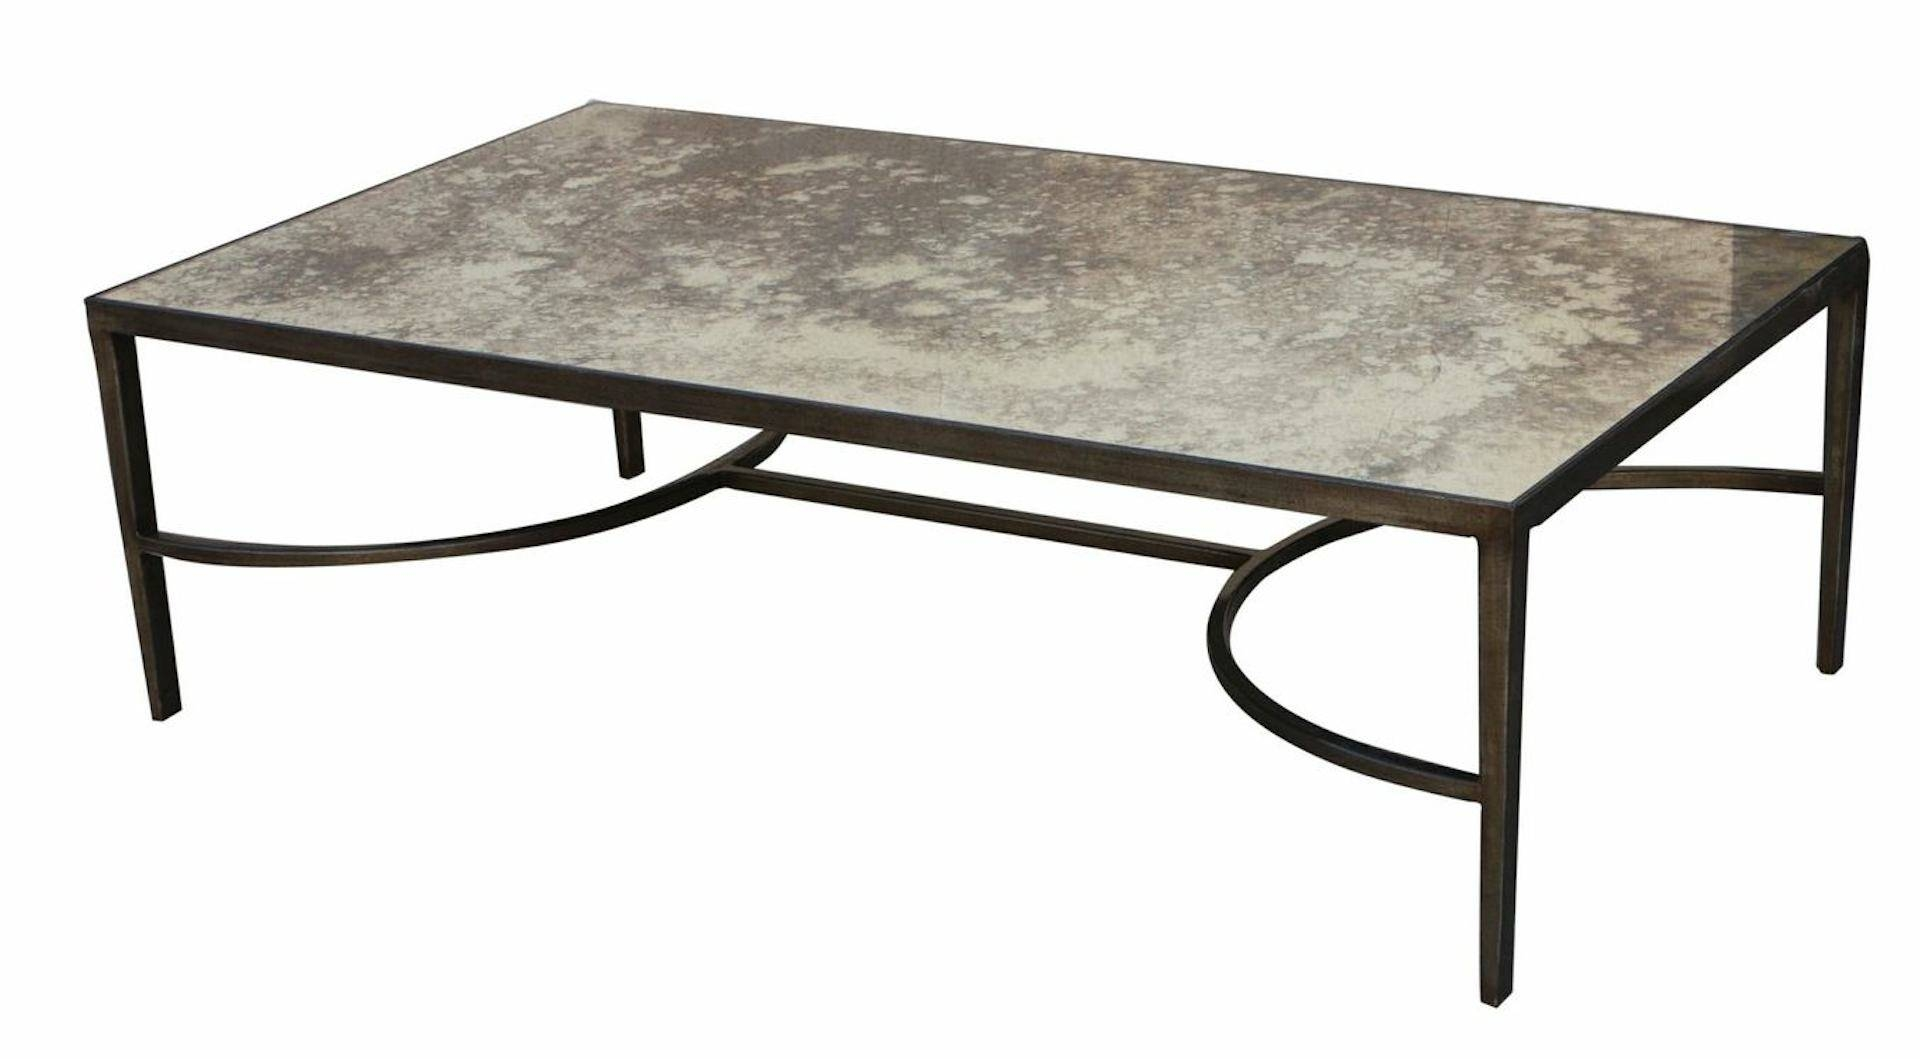 Vintage Mirrored Coffee Table — Liberty Interior : How To Build A with regard to Vintage Mirror Coffee Tables (Image 28 of 30)